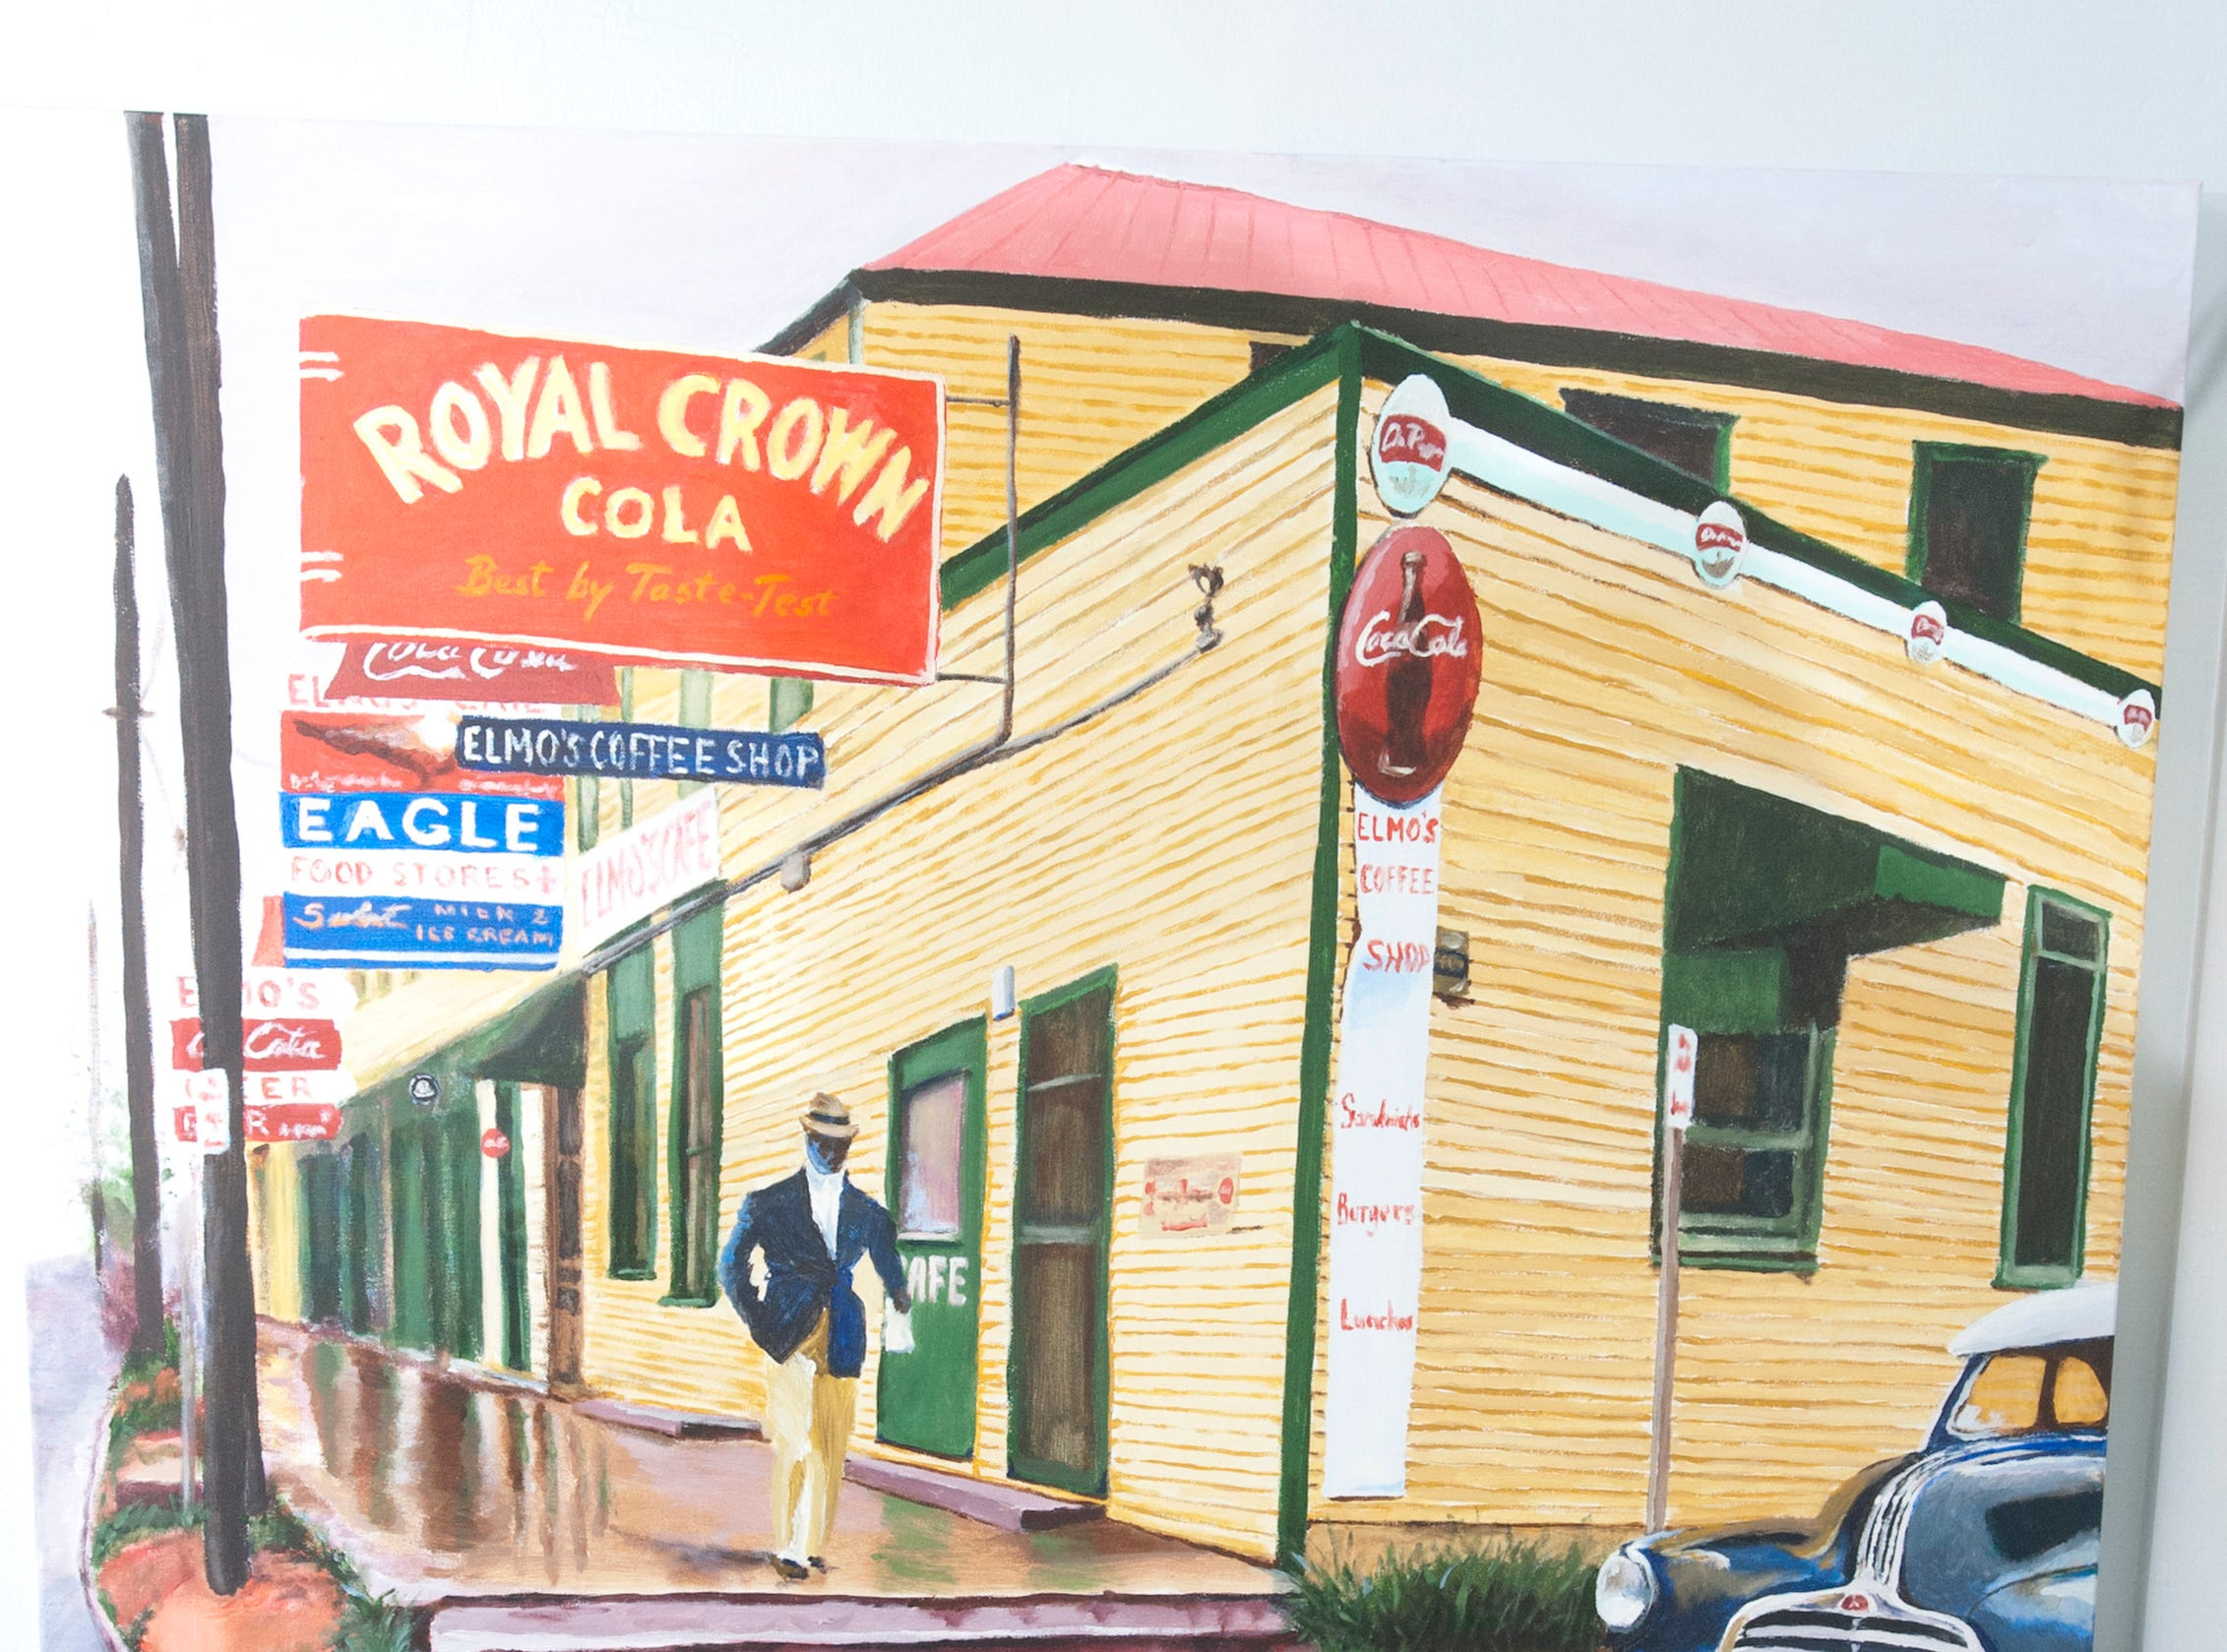 This Cannady painting of a man walking under a Royal Crown Cola sign hangs over a small side table with liquor bottles and and ice bucket in the Princess bar room on the second floor.10 December 2018